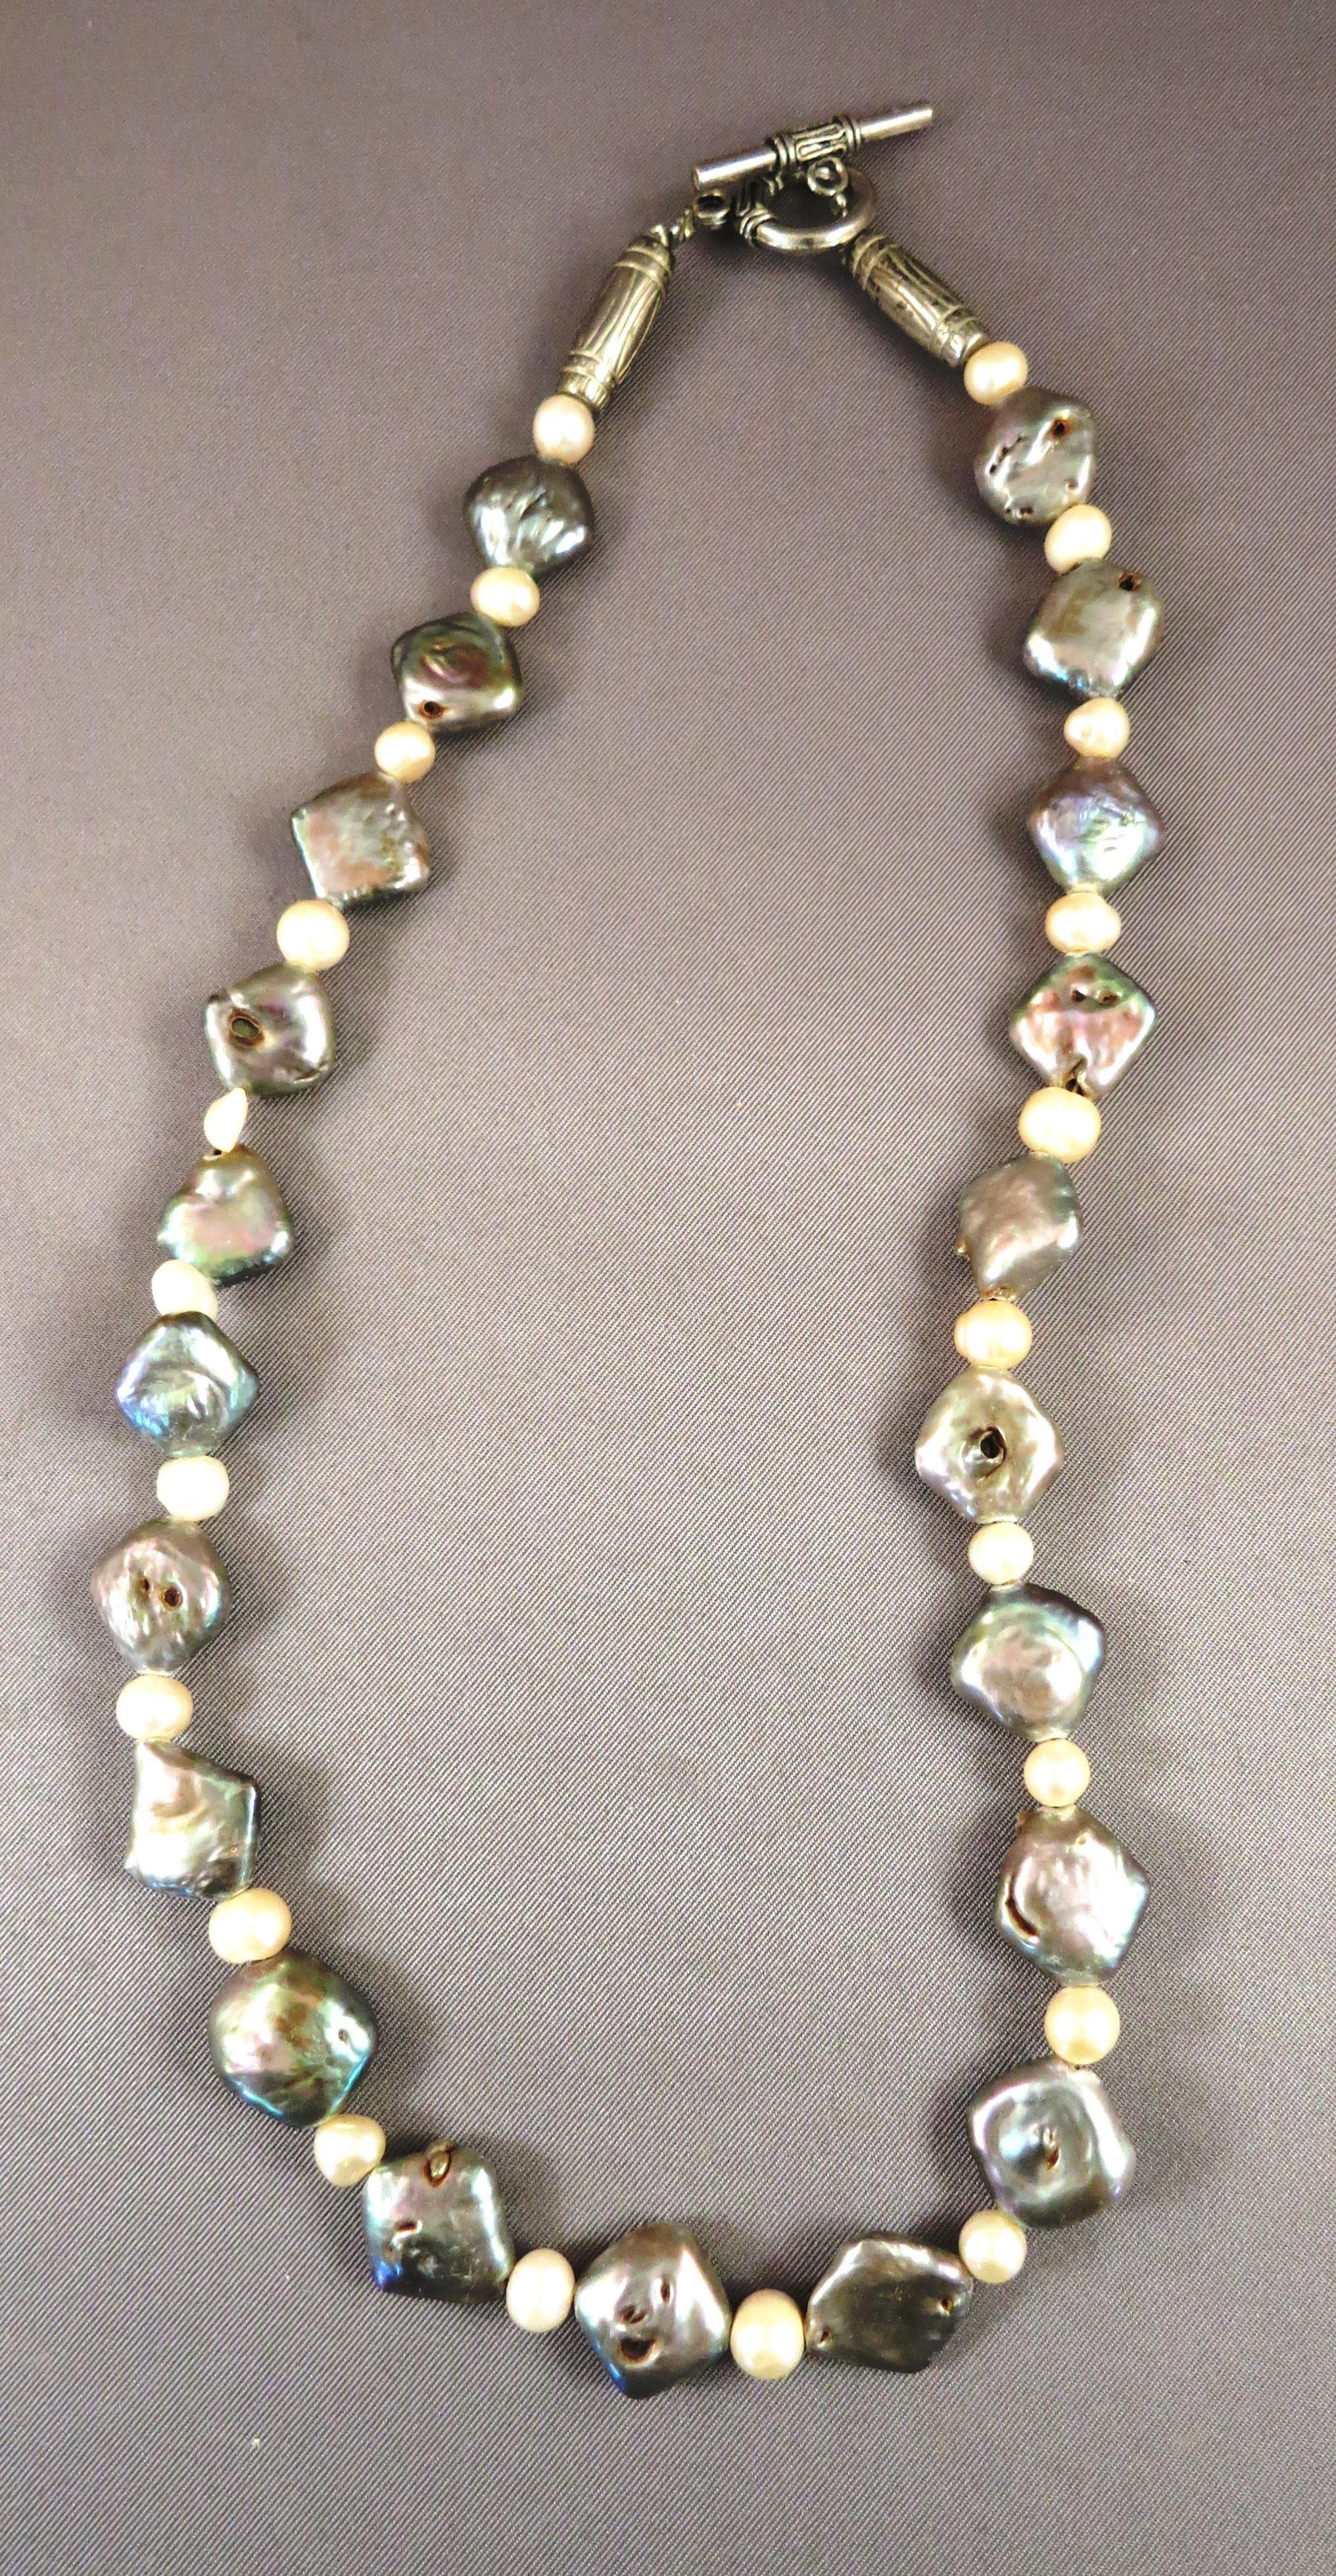 VINTAGE Interesting 19 Inch Pearl and Mother of Pearl Necklace